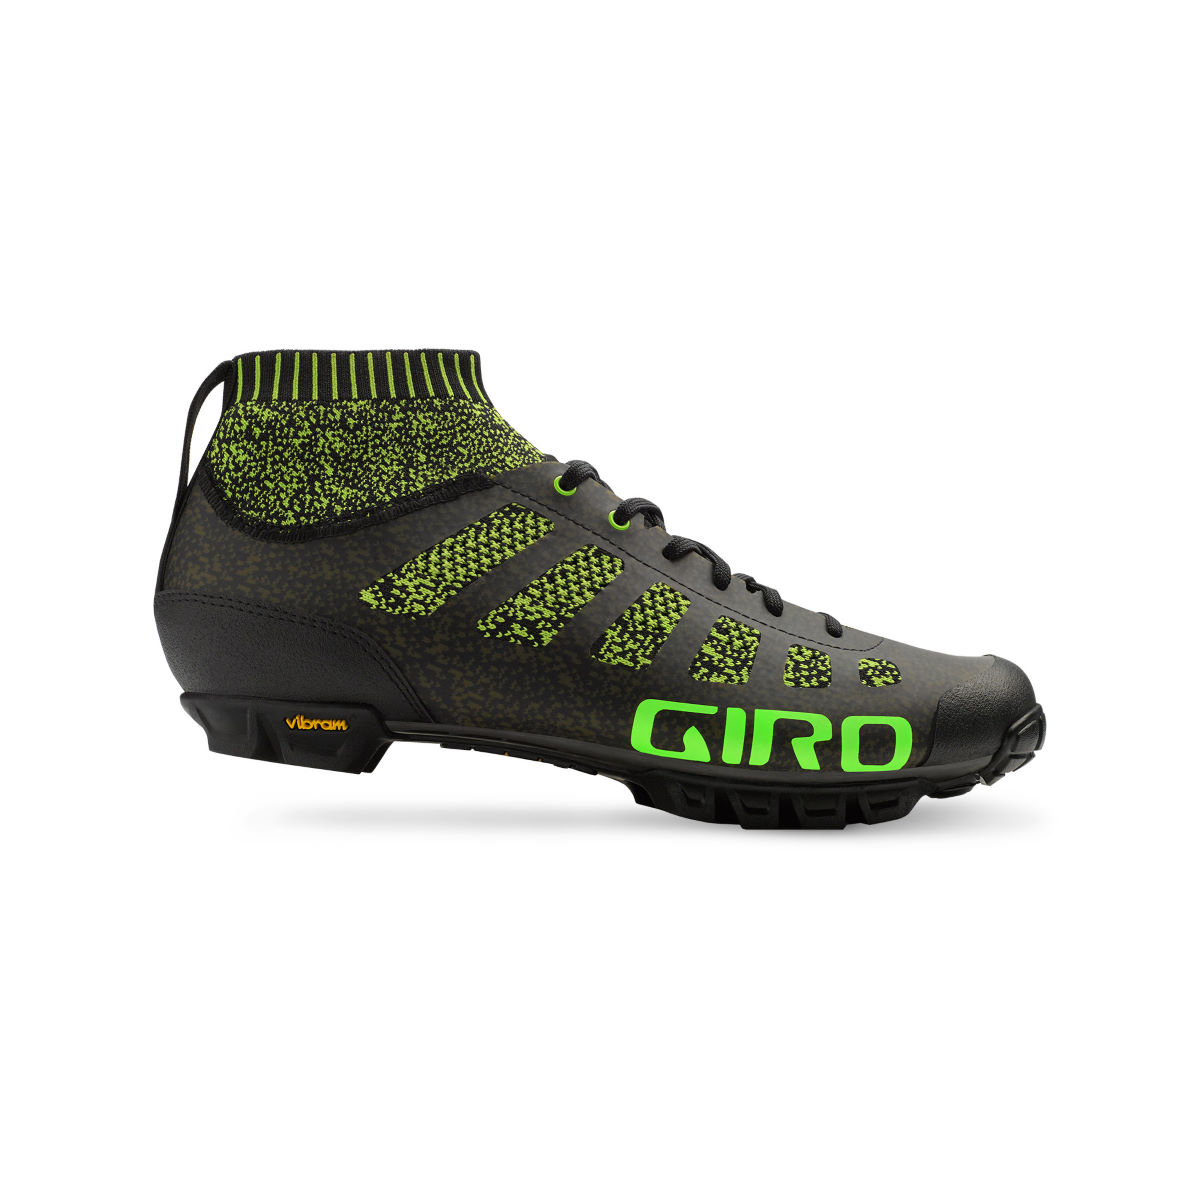 Chaussures VTT Giro Empire VR70 Knit - 40 Lime/Black